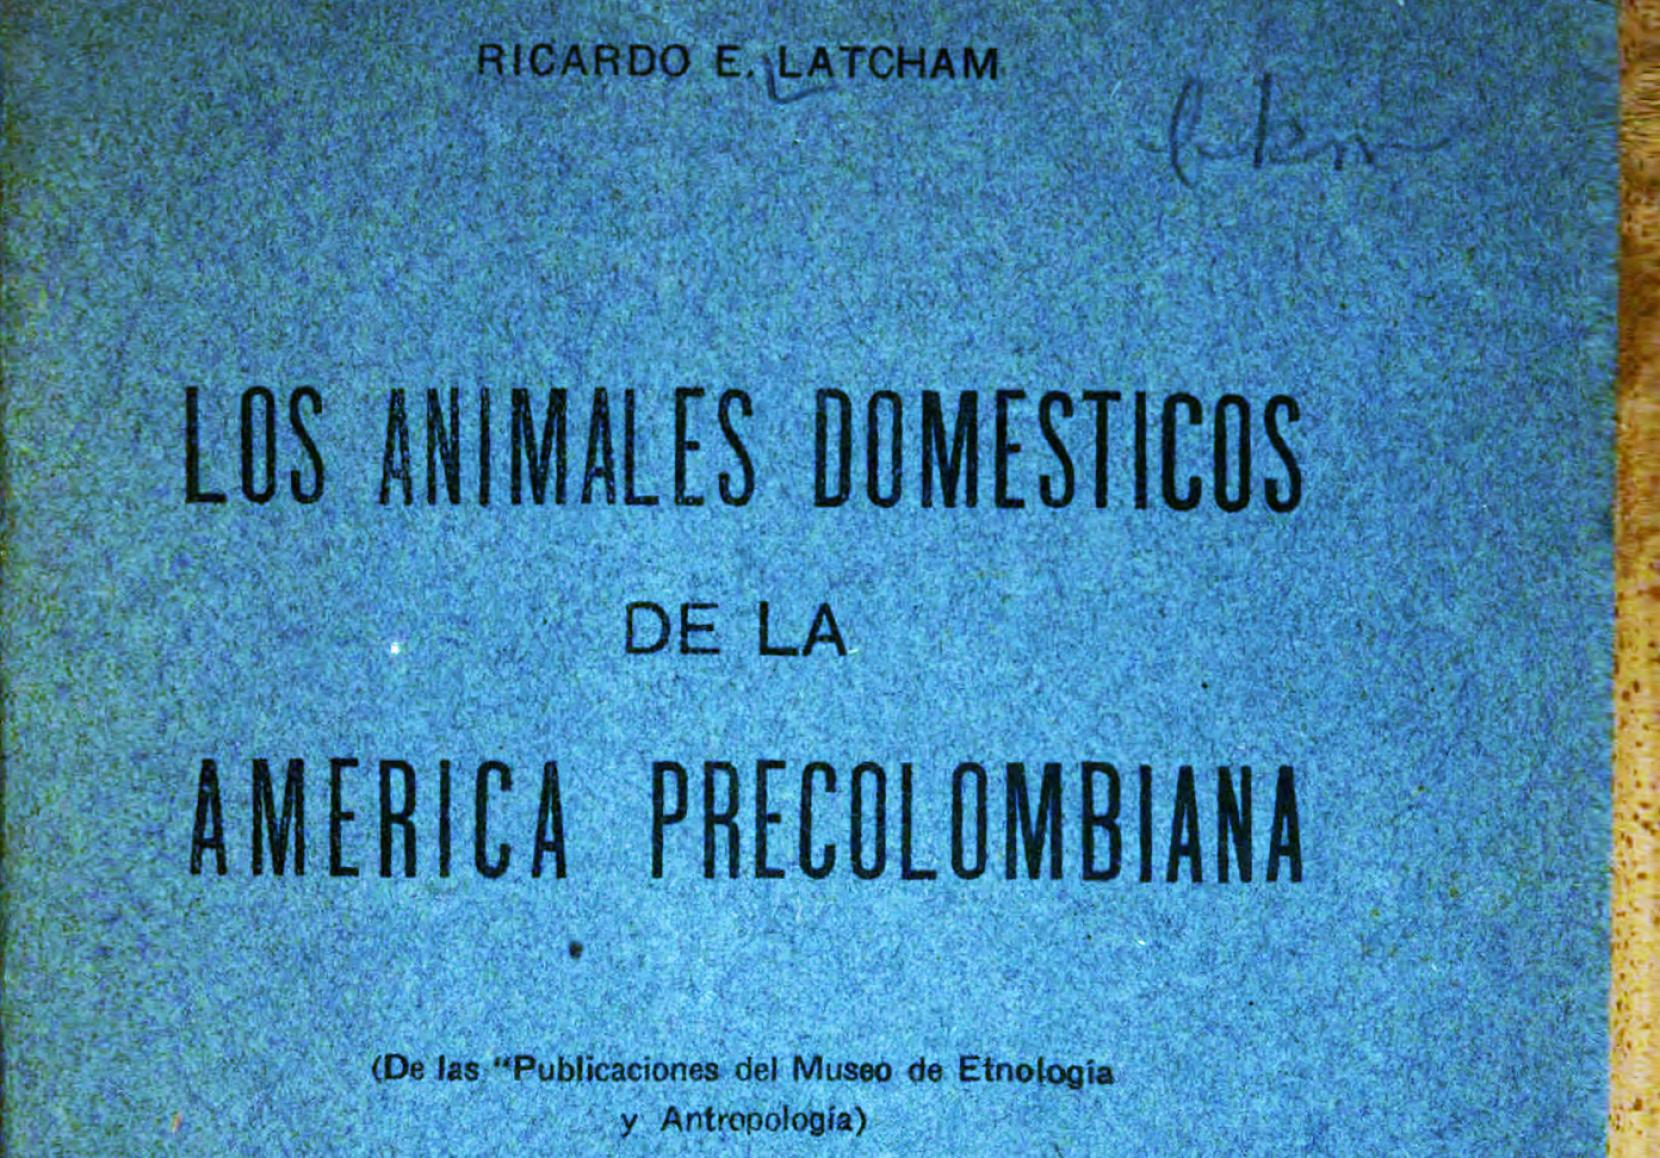 Latin American Collections Now Available in Digital Repository